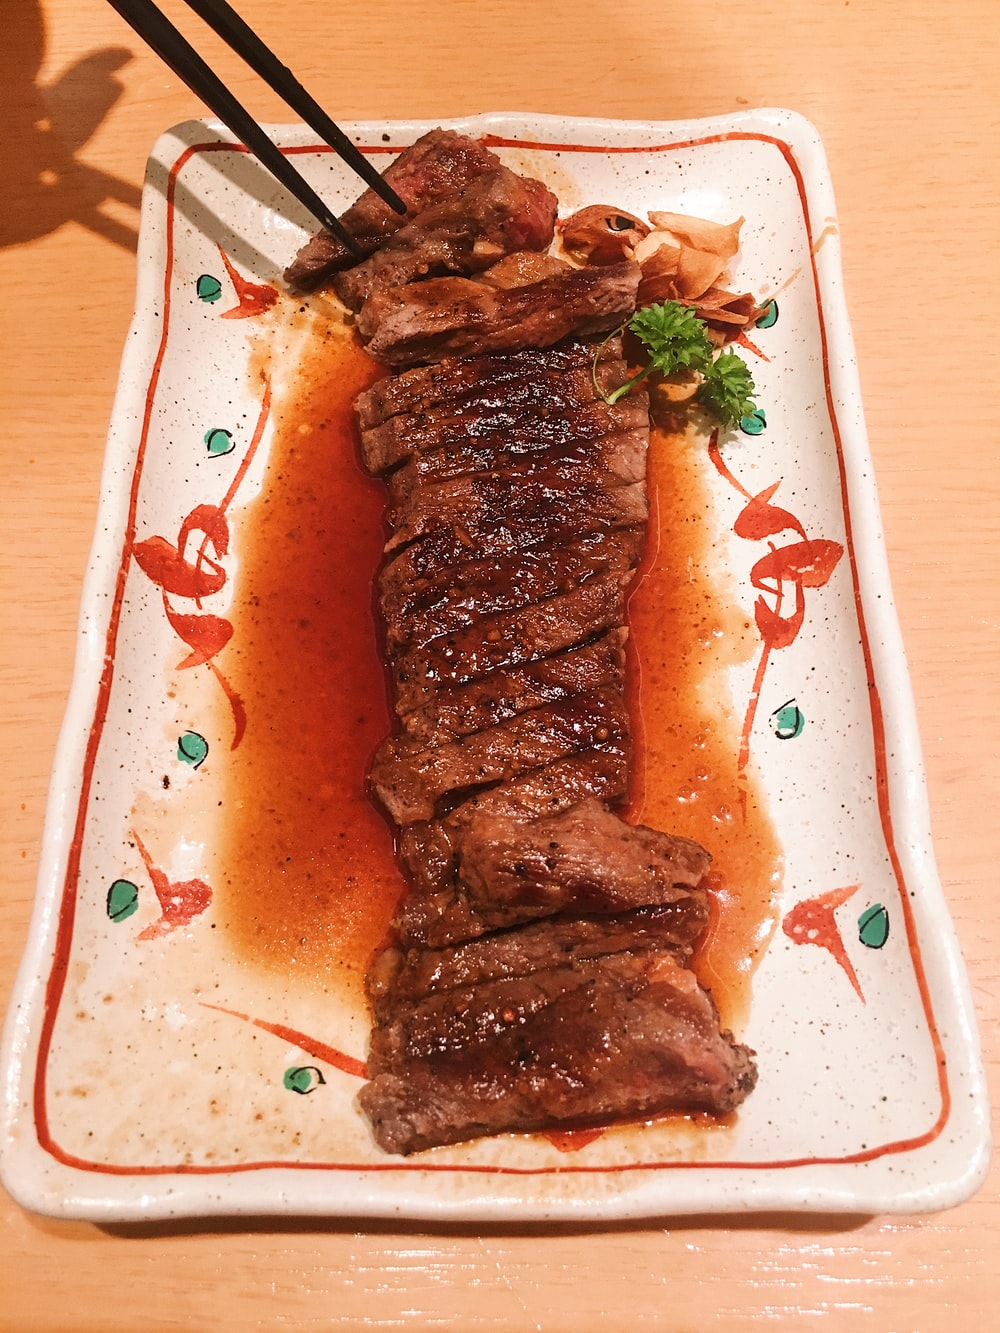 grilled meat slices on plate